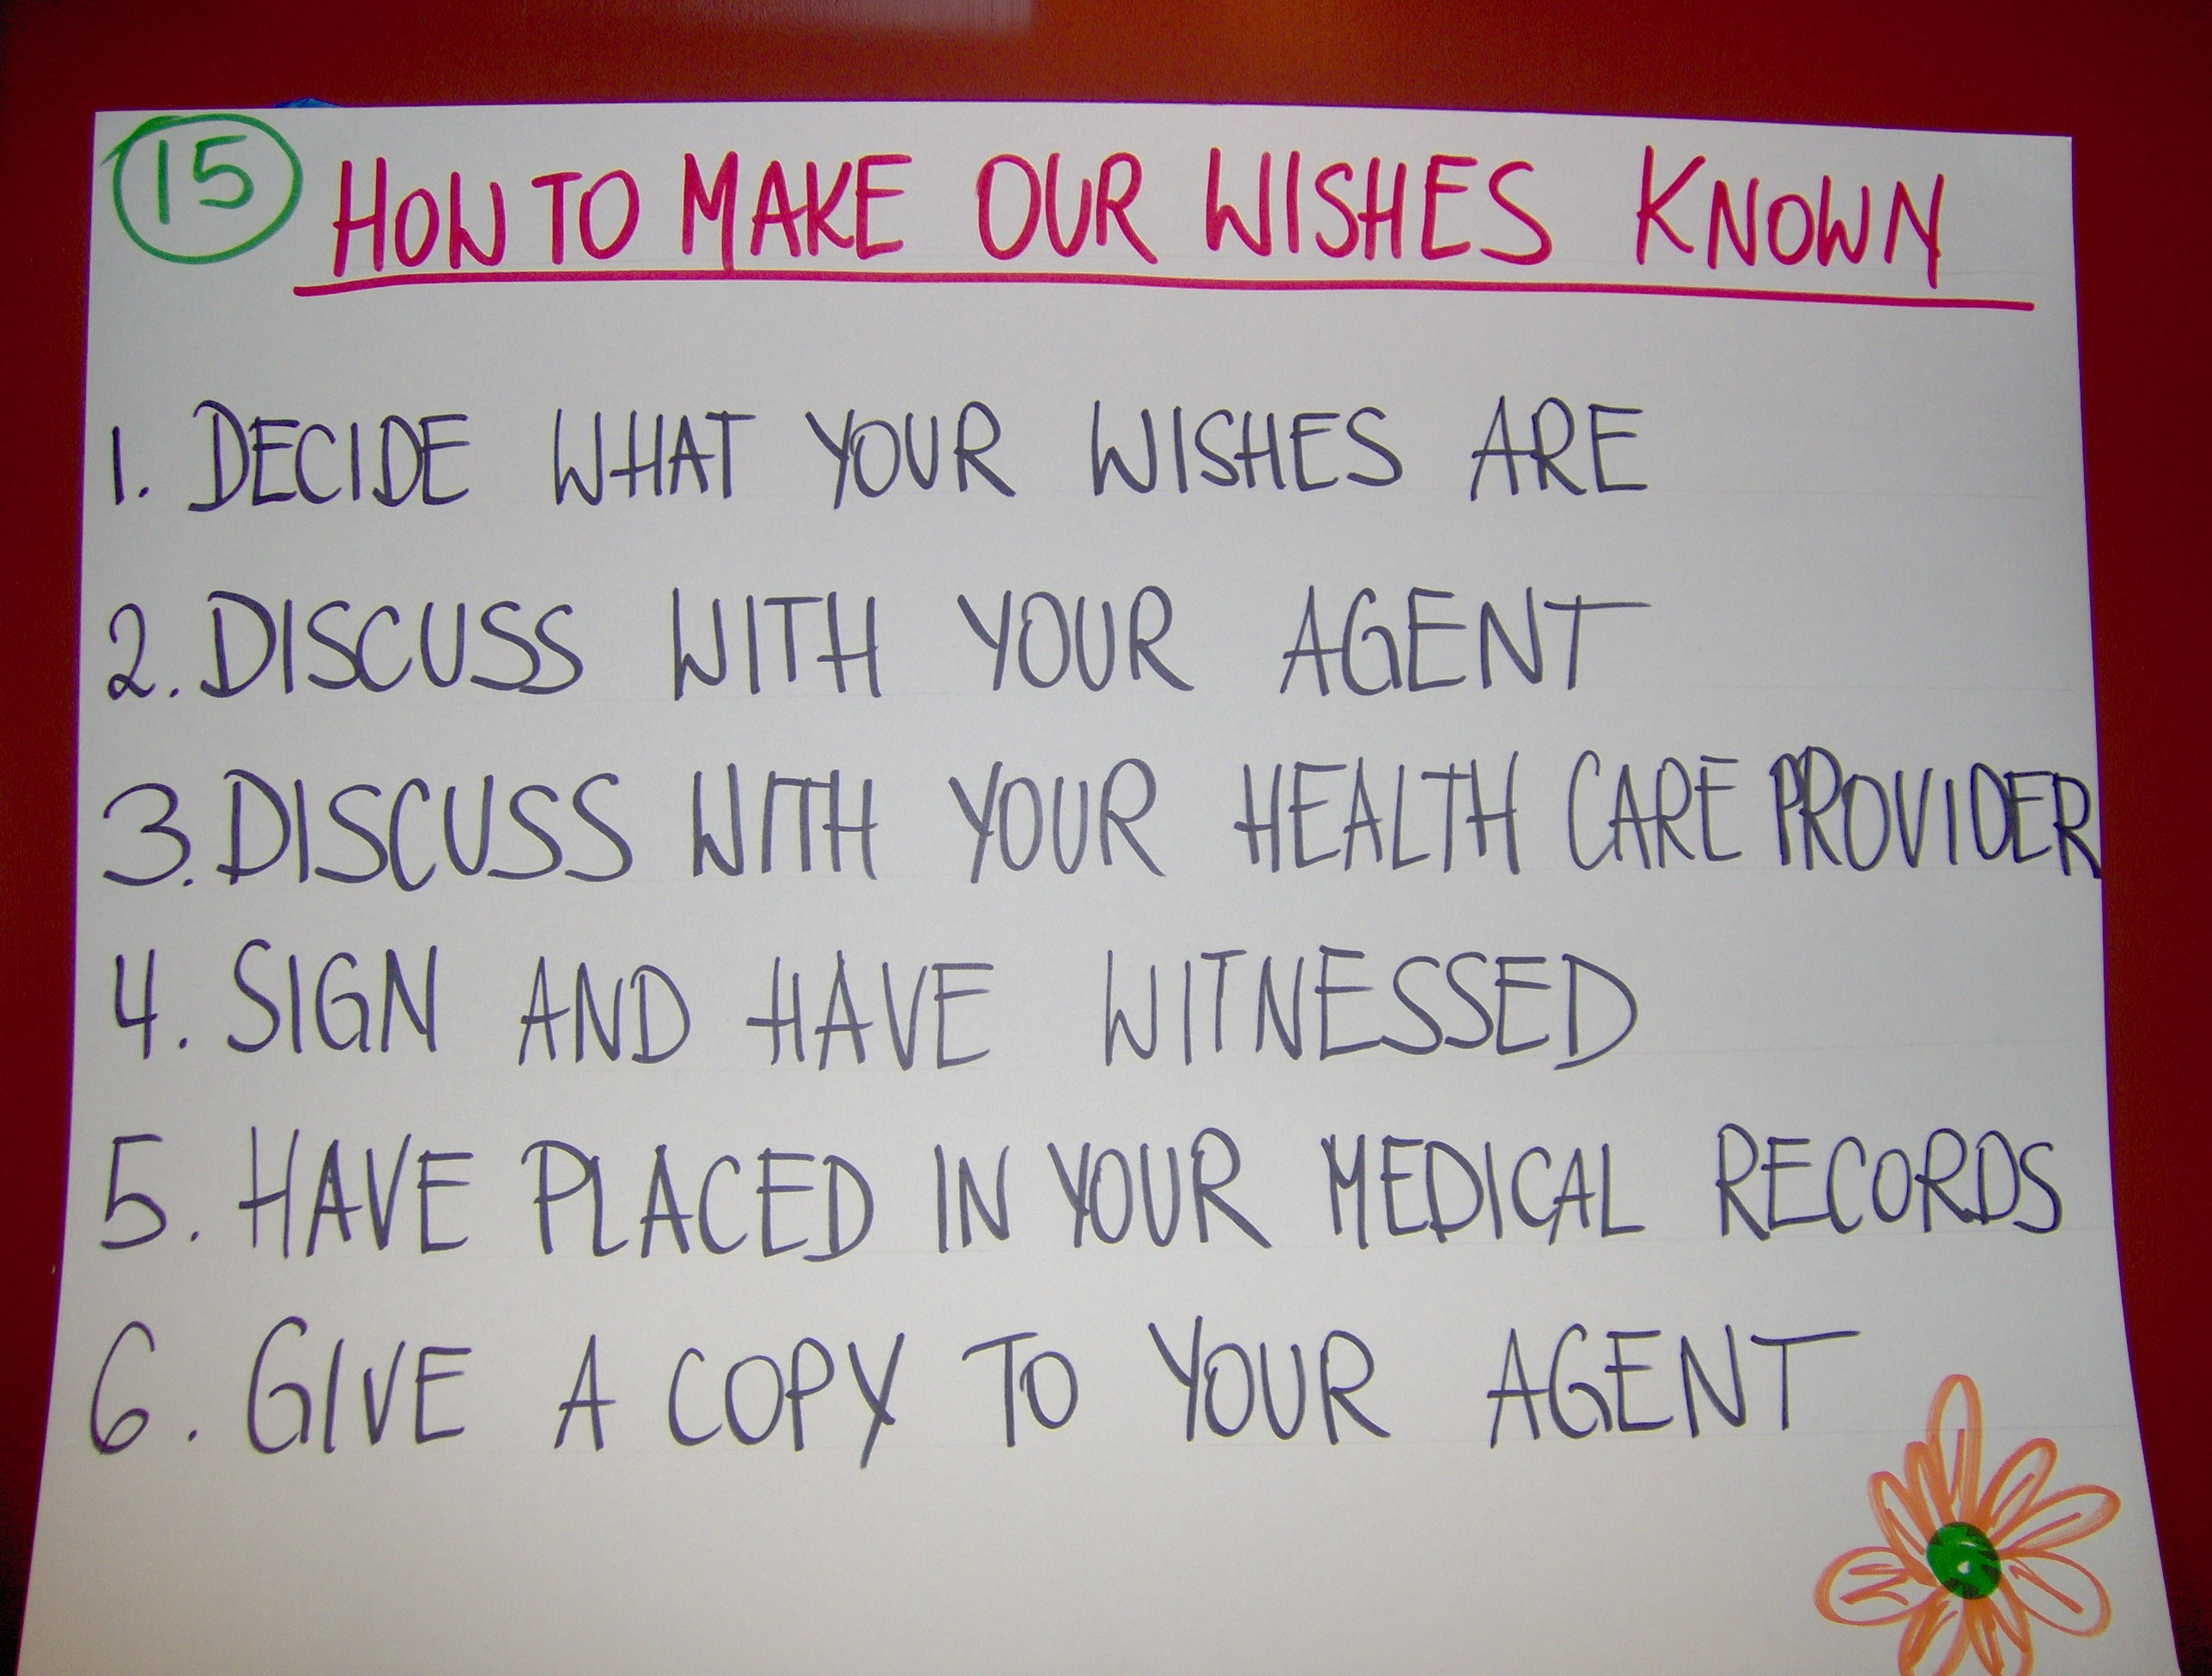 Educational chart on how to make our wishes known